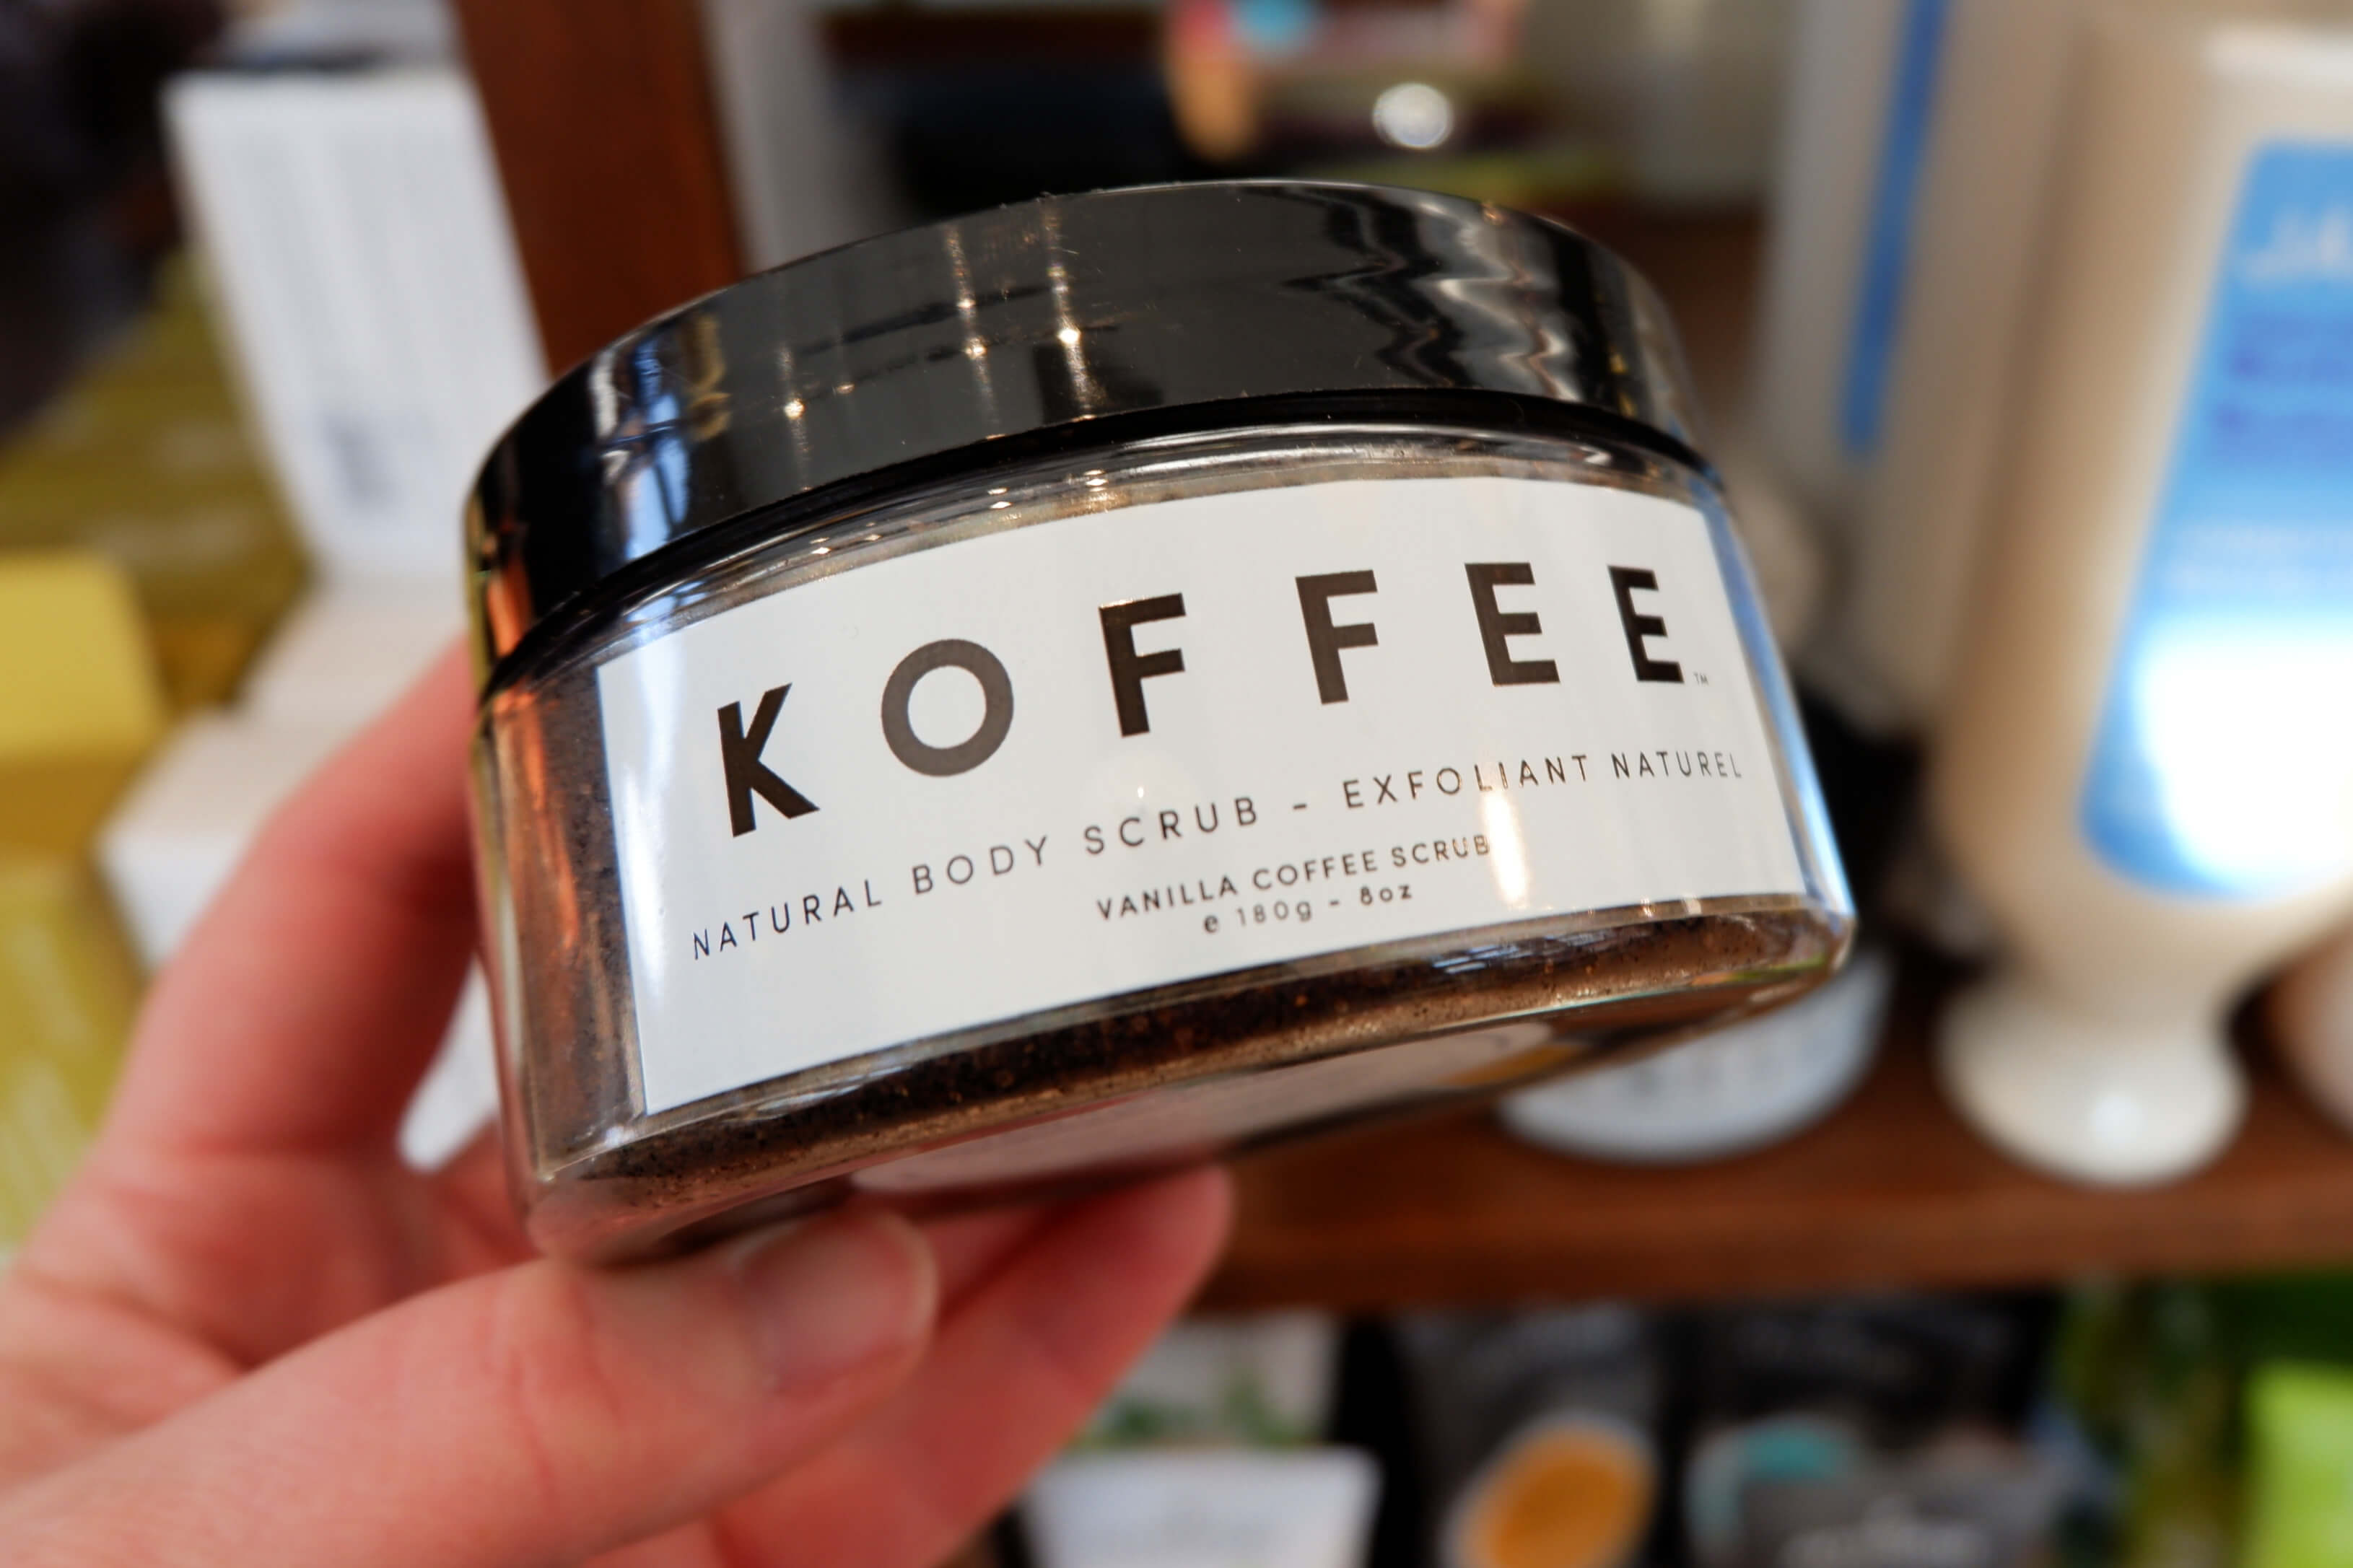 sequoia downtown koffee organics scrub gift ideas her mother day chirstmas self care facial moncton riverview dieppe